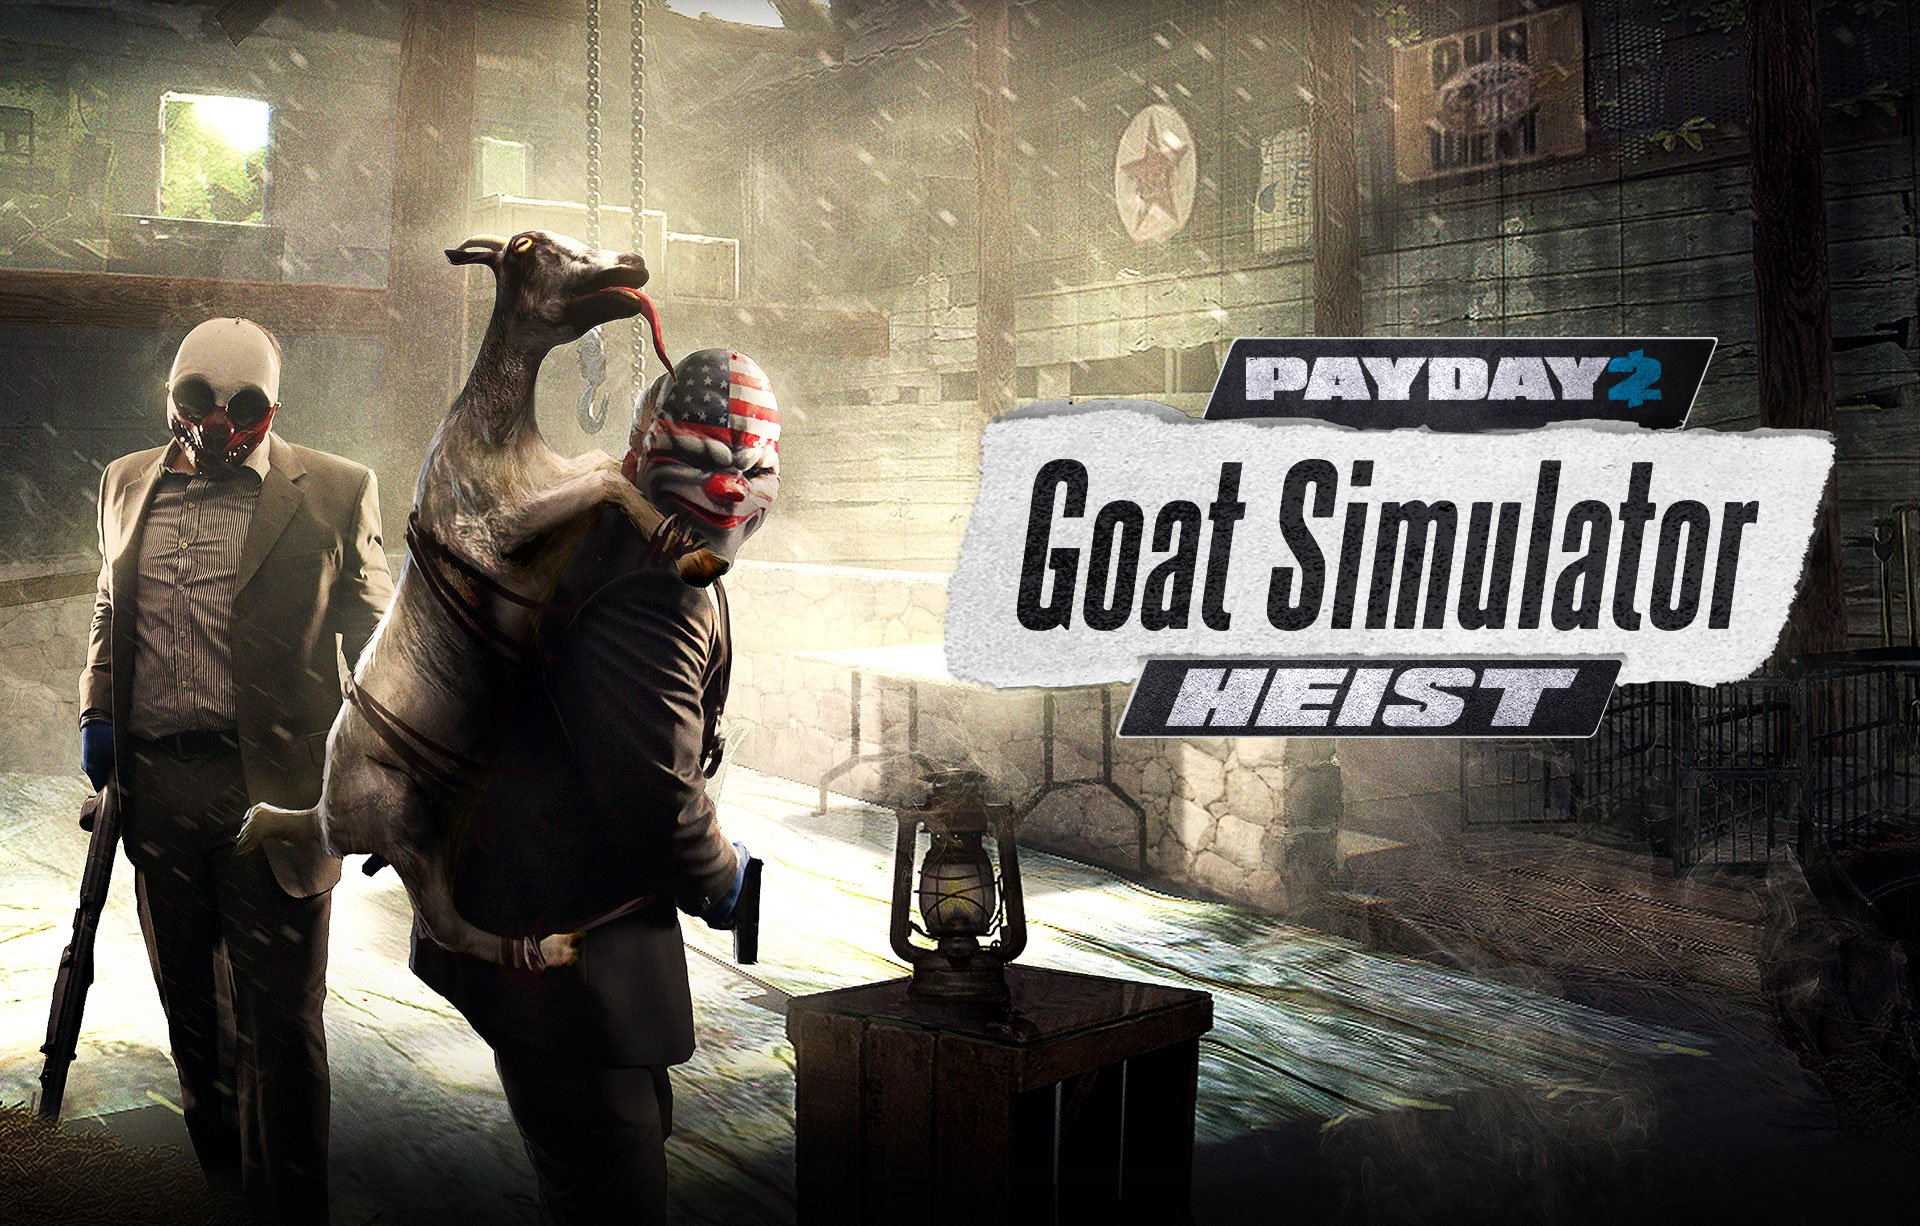 Photo of Goat Simulator invadeaza Payday 2